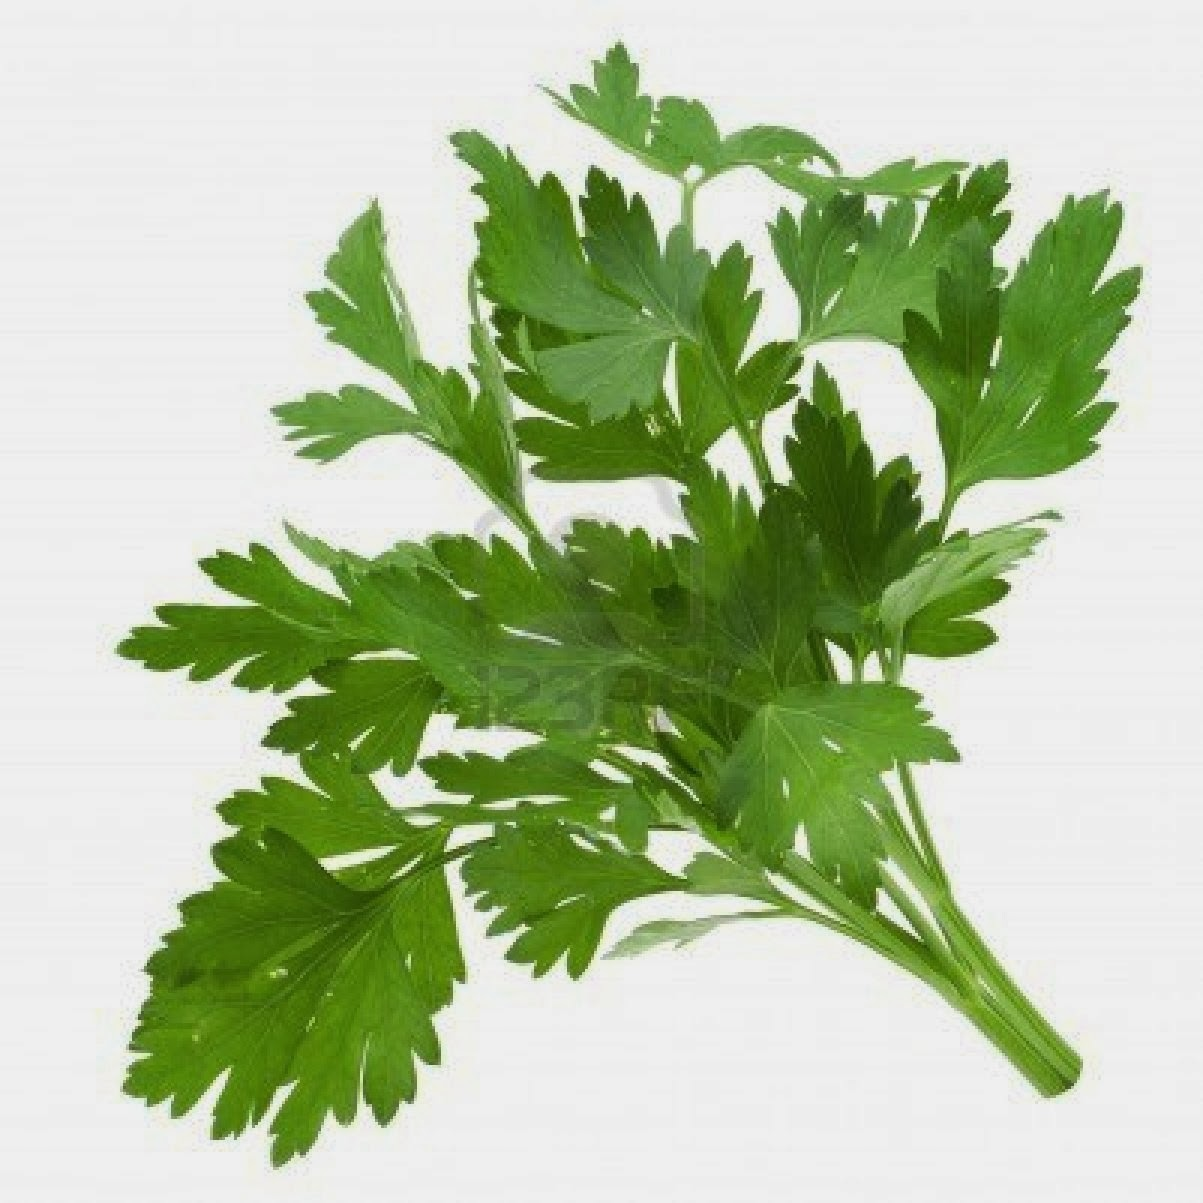 Parsley clipart cilantro PARSLEY Hound: The Herb PARSLEY